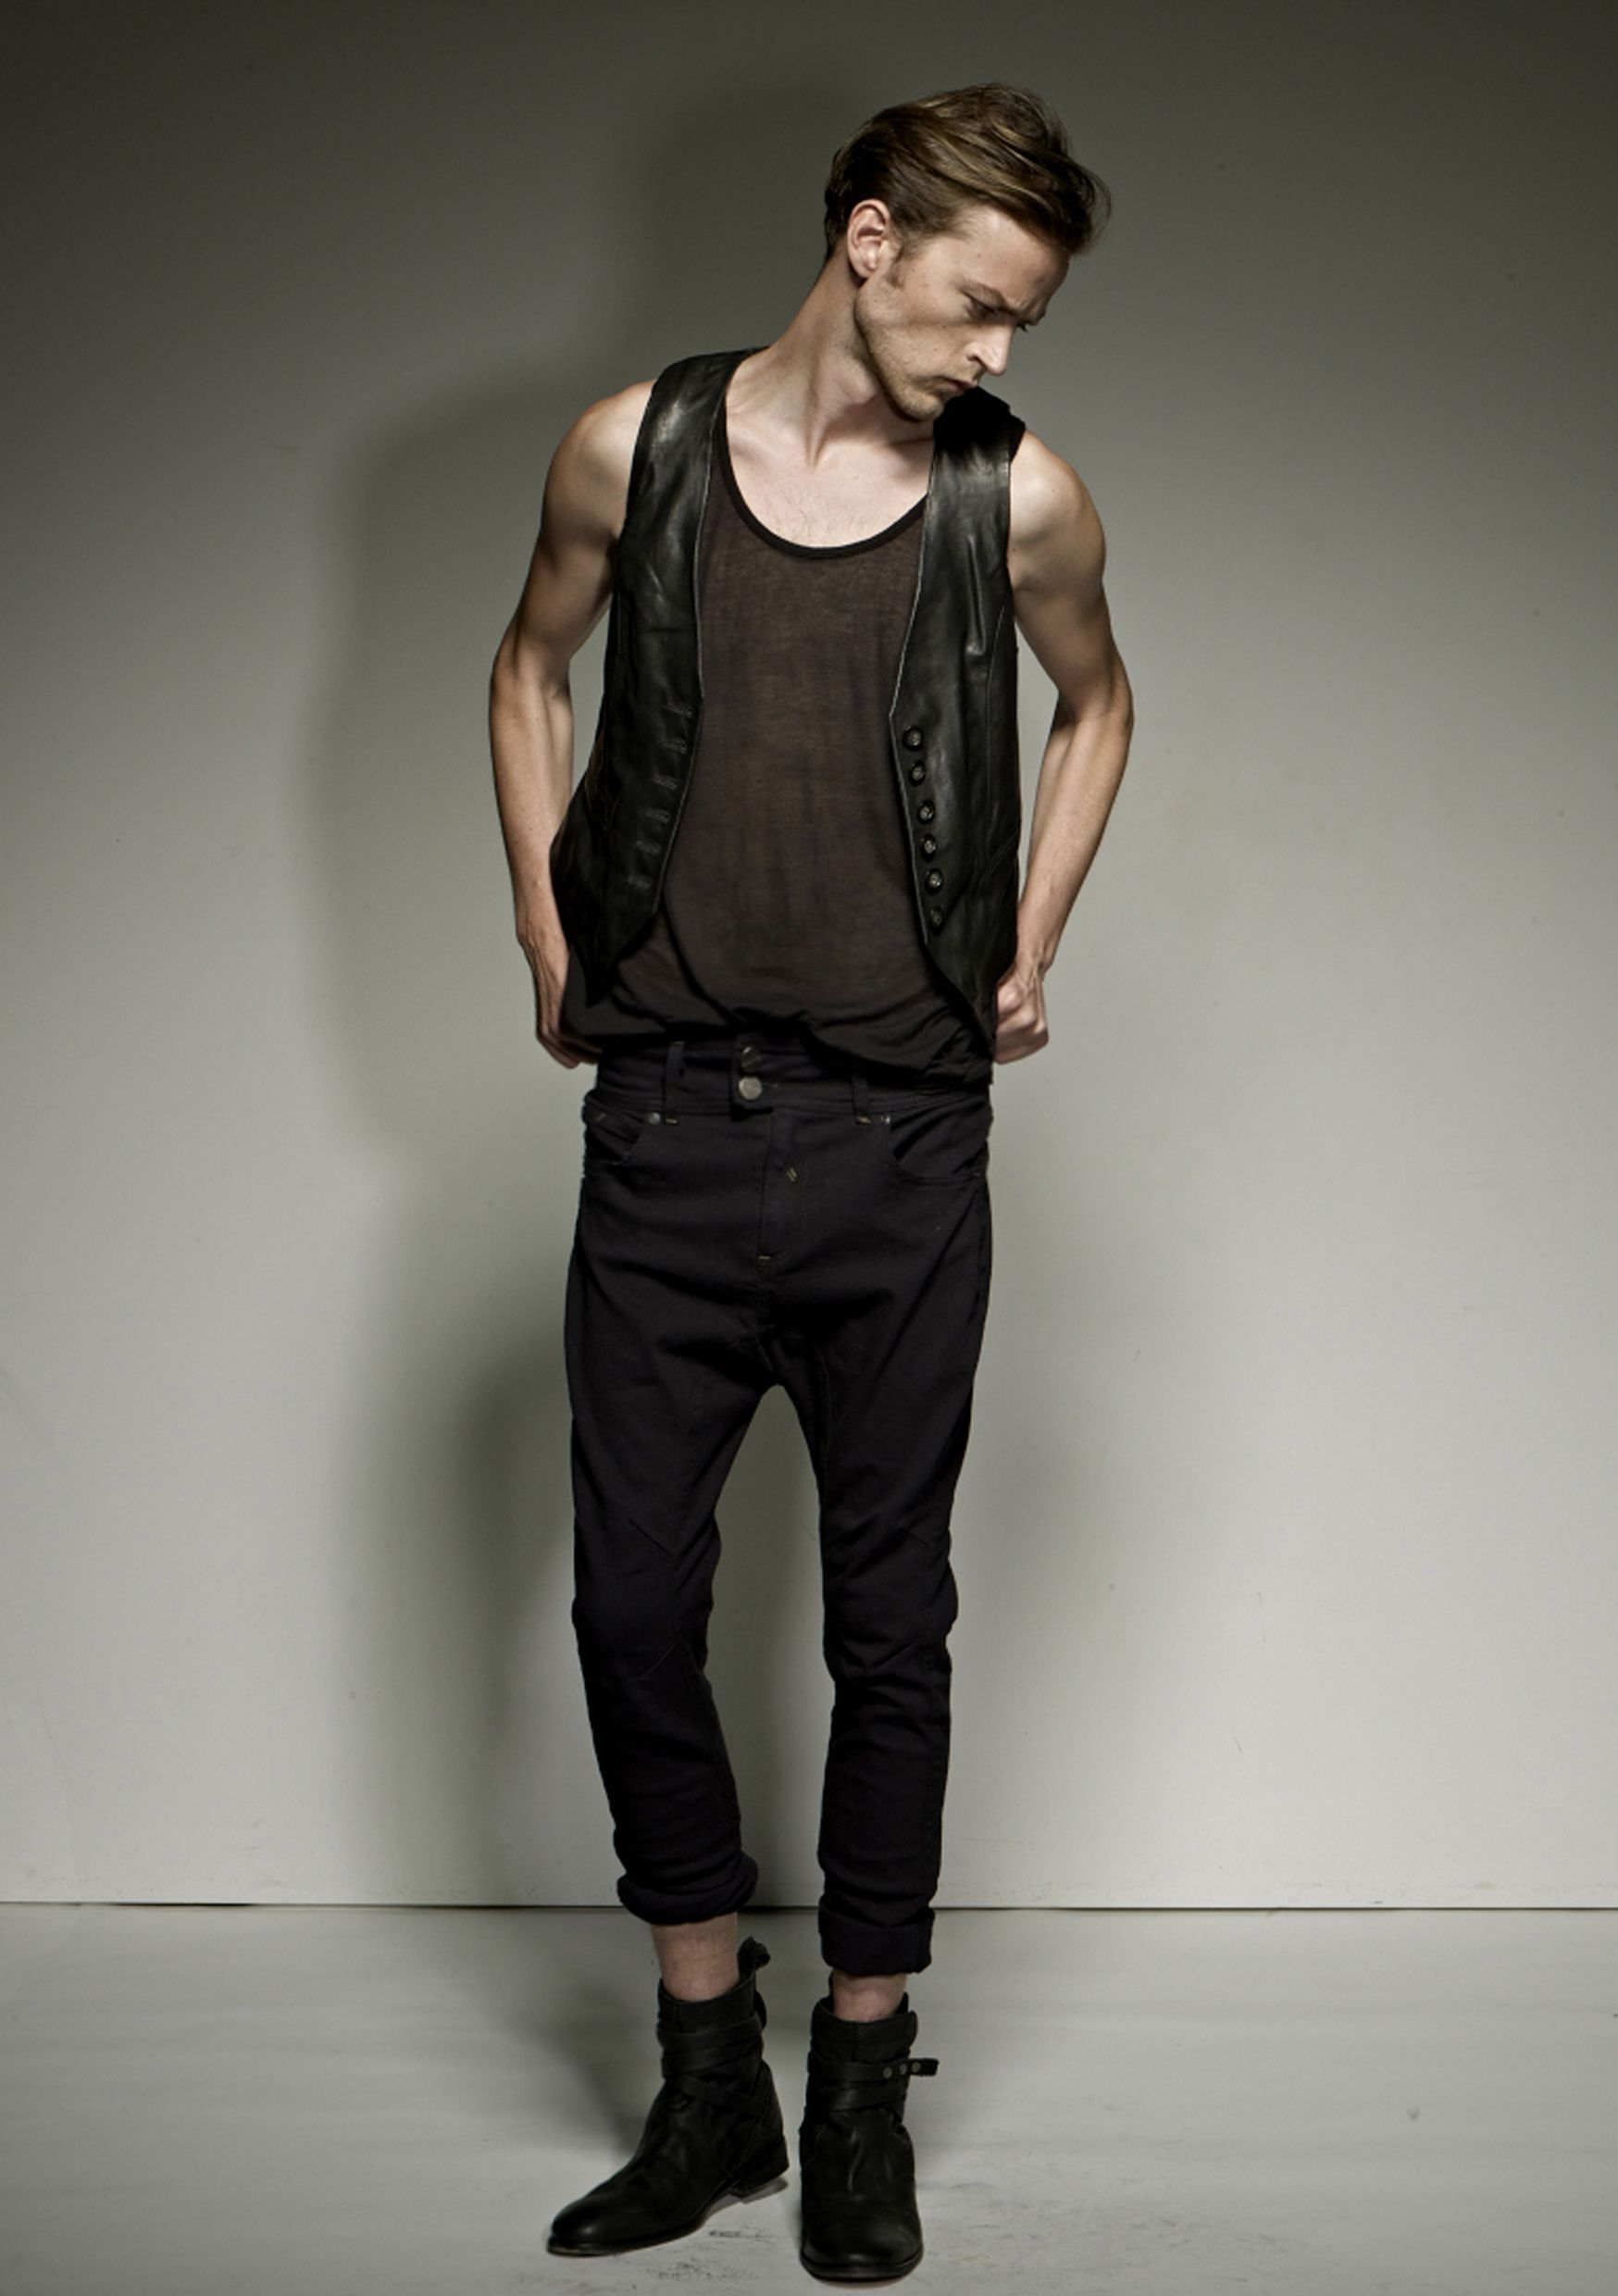 DZOJCHEN A/W12-13 Top: Lambskin leather button down vest & sheer tank Bottom: Black drop crotch jeans with racer panels